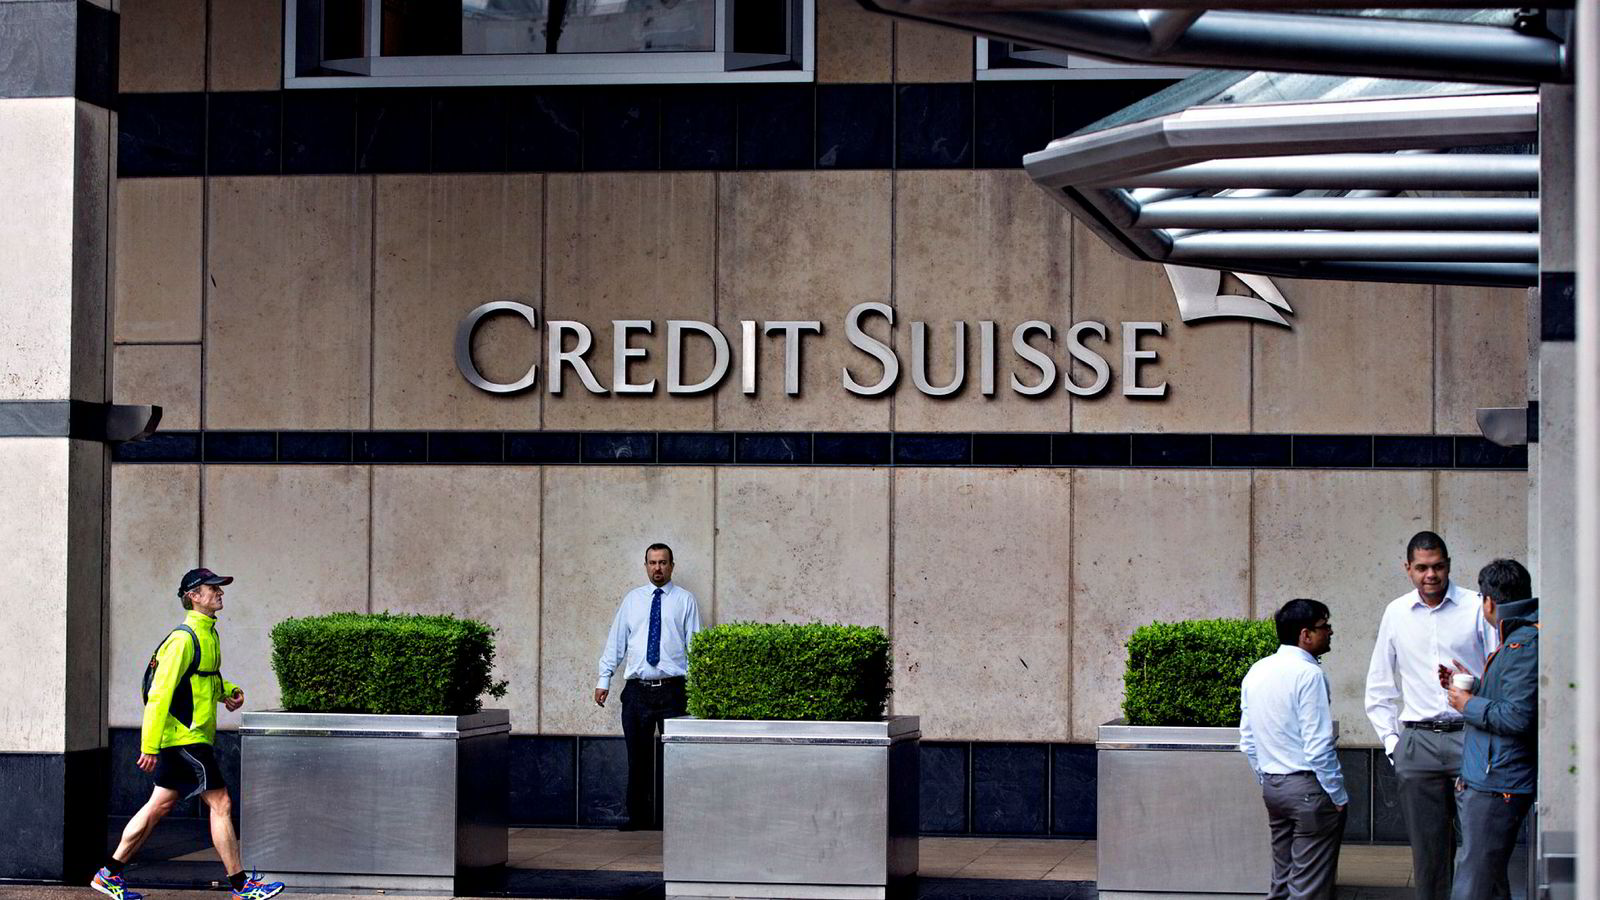 Credit Suisses lokaler i Canary Wharf, London.